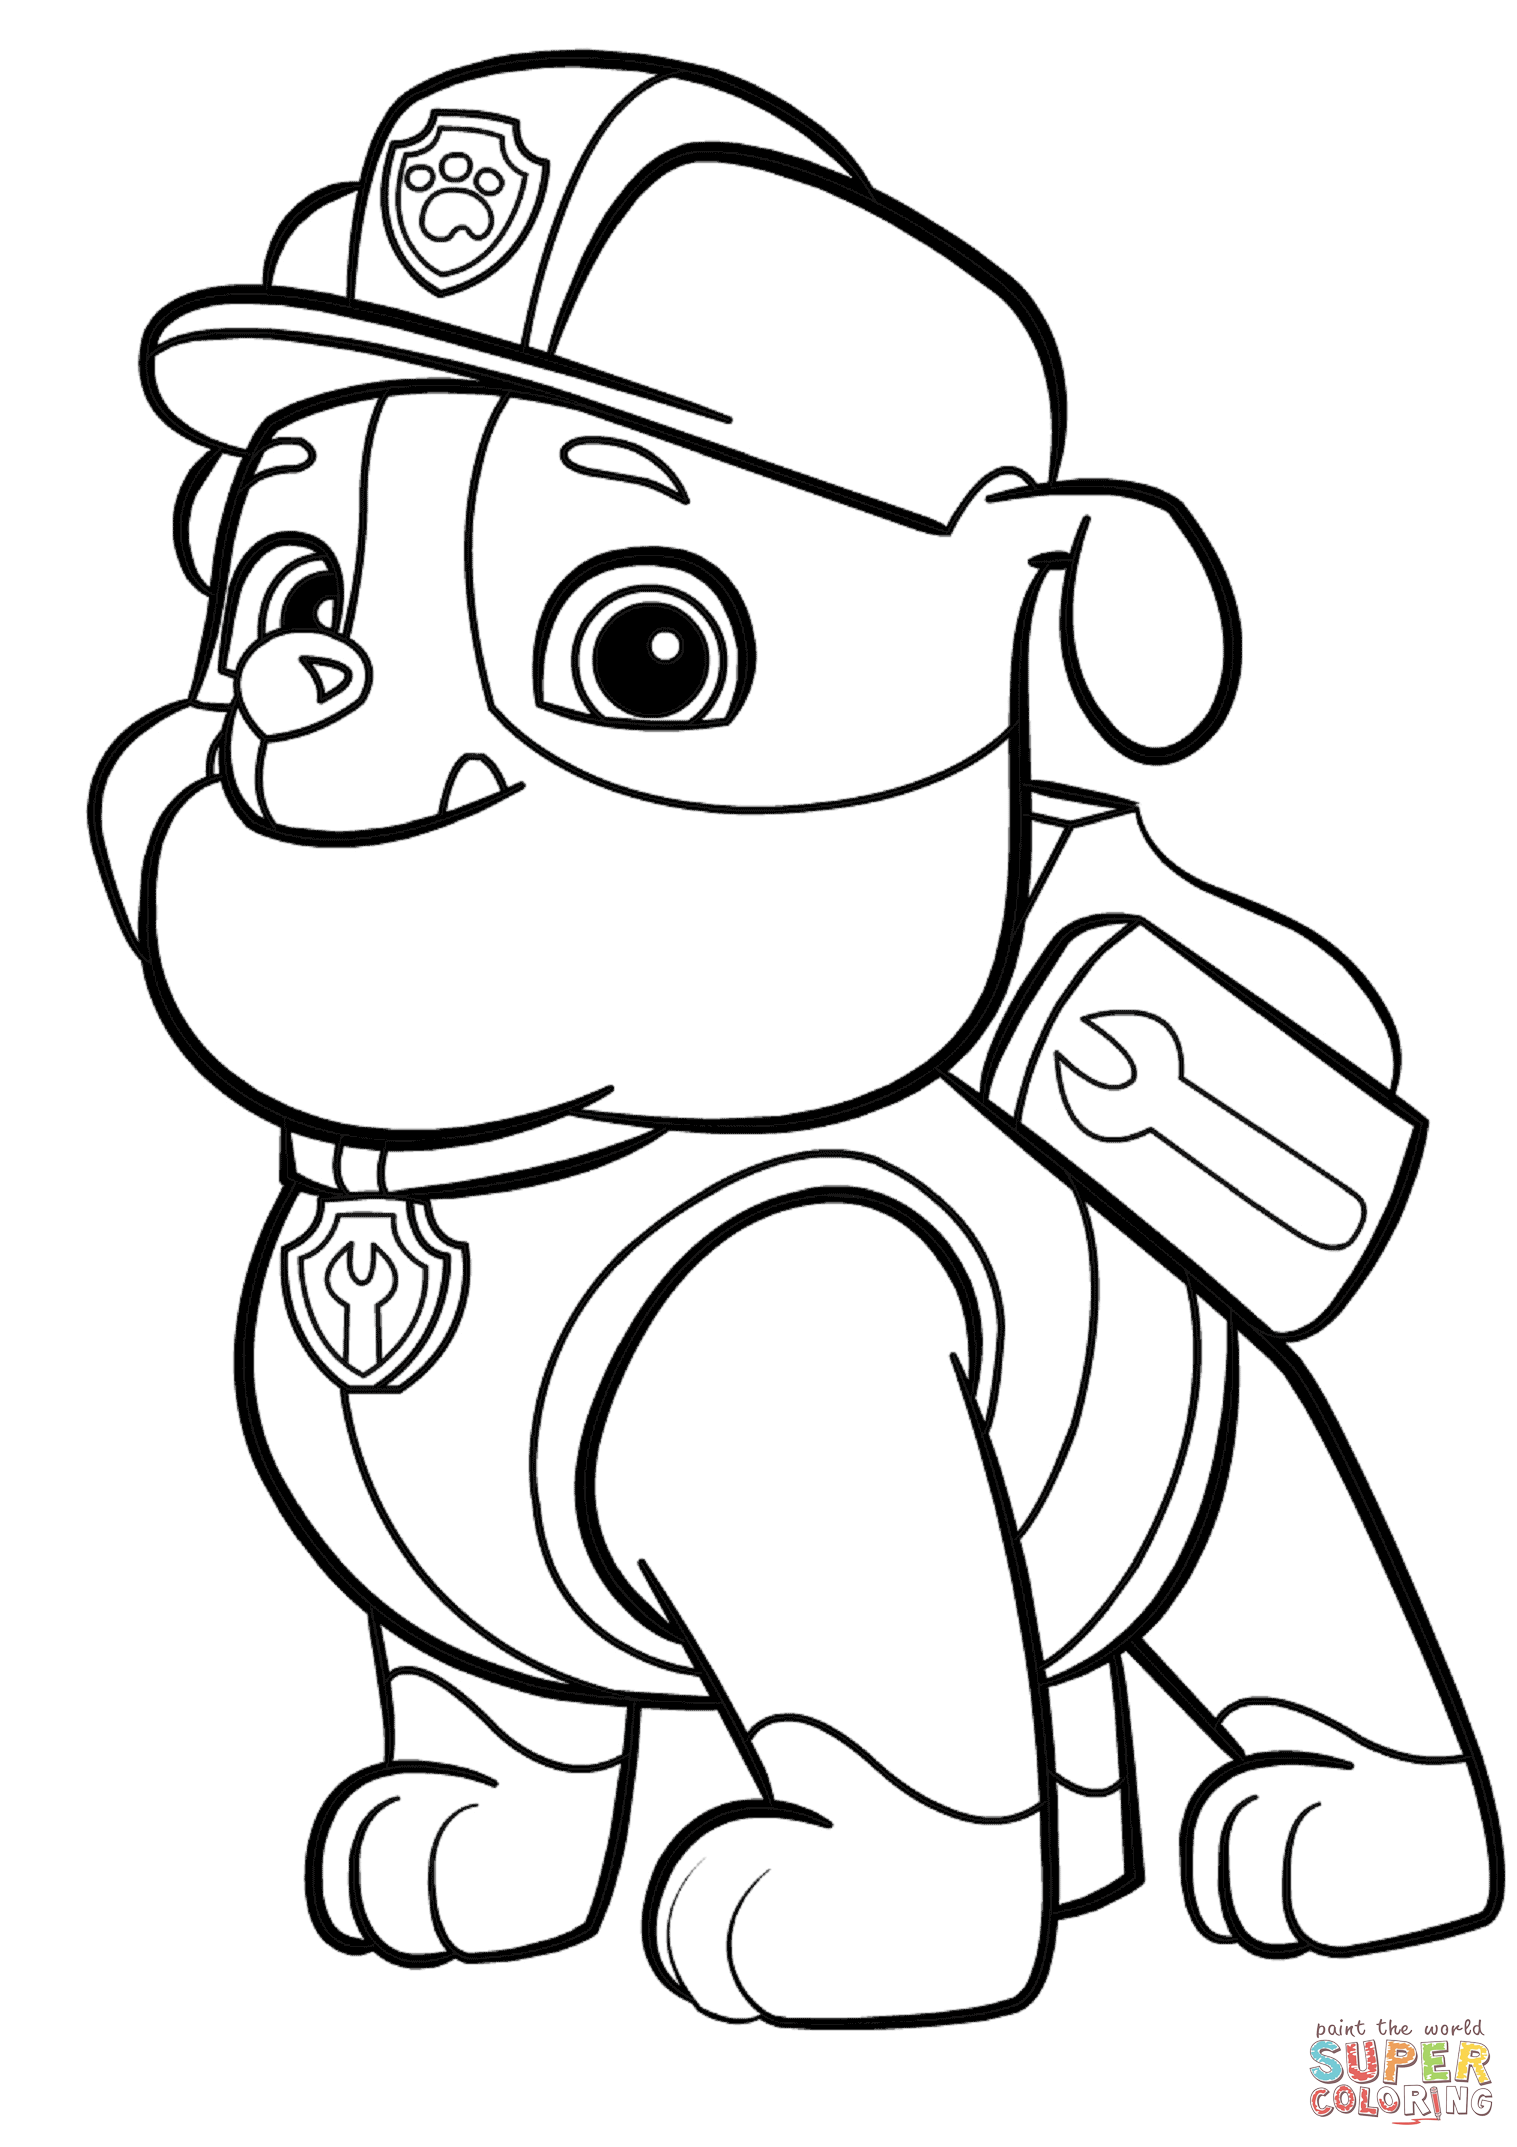 Paw patrol clip art black and white graphic transparent stock Paw Patrol Rubble coloring page | Free Printable Coloring Pages graphic transparent stock